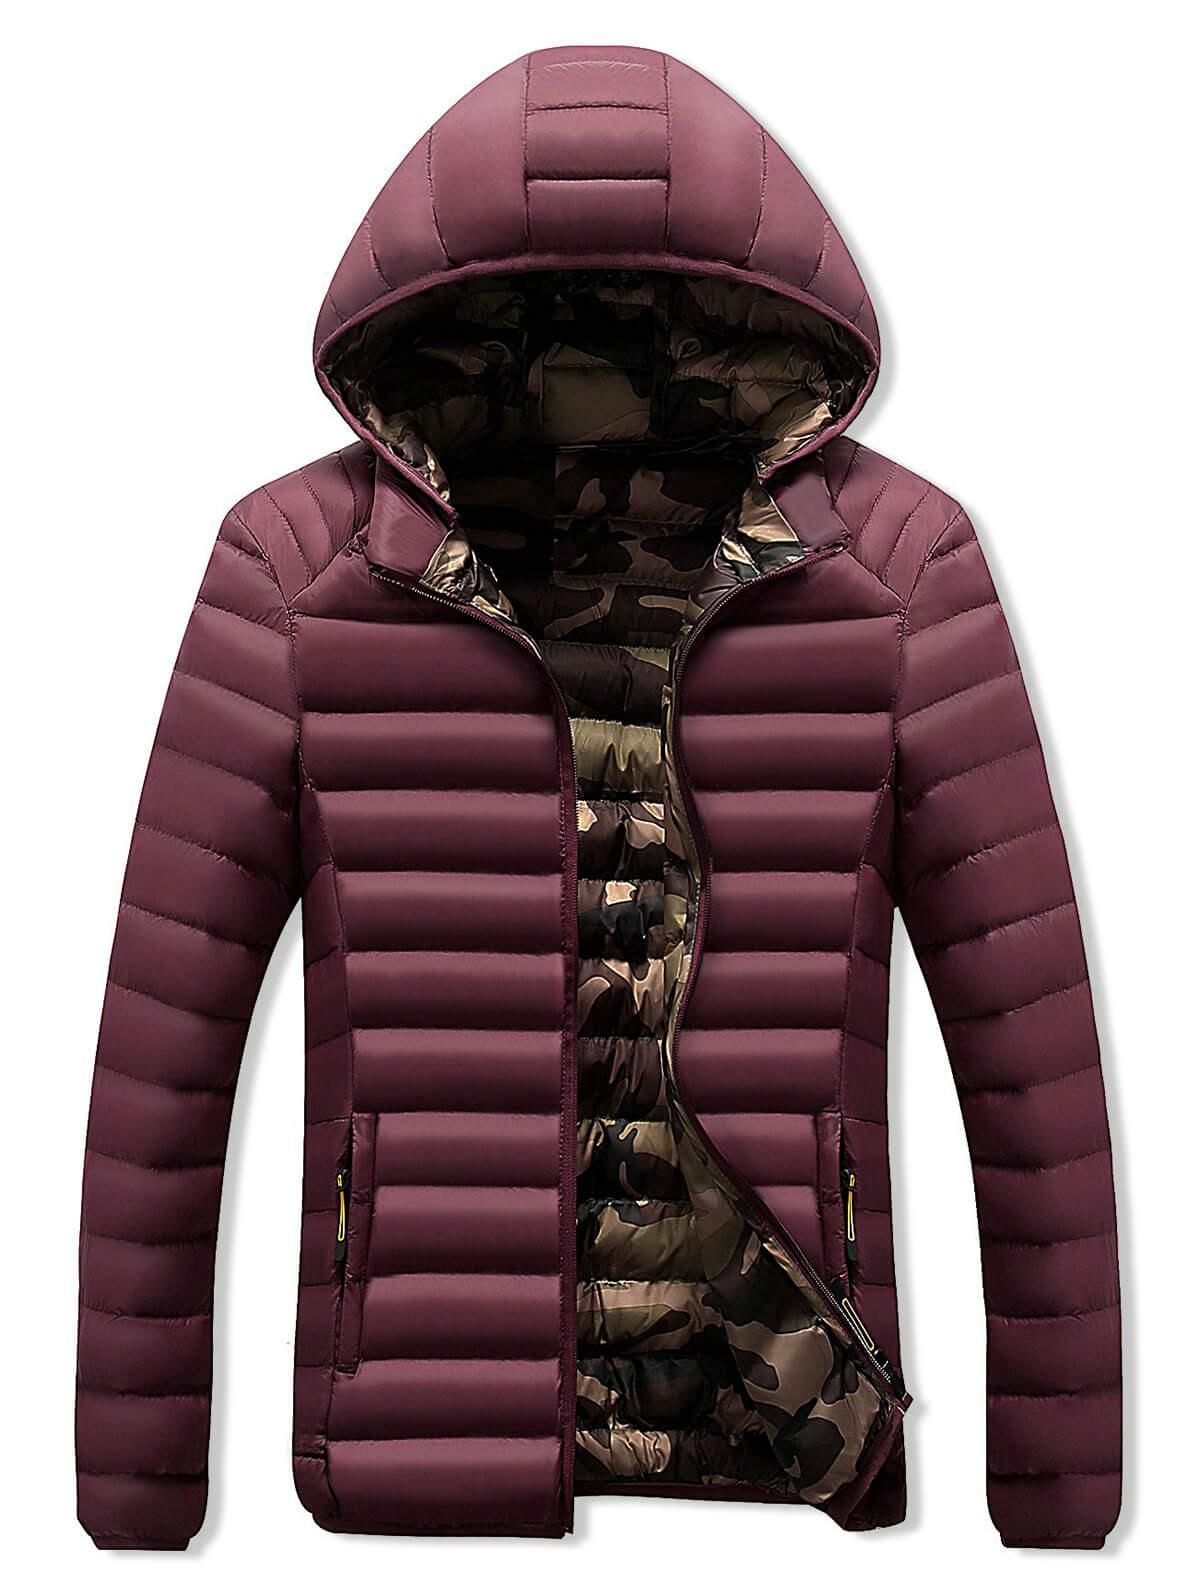 Chic Camo Lined Zip Up Puffer Jacket